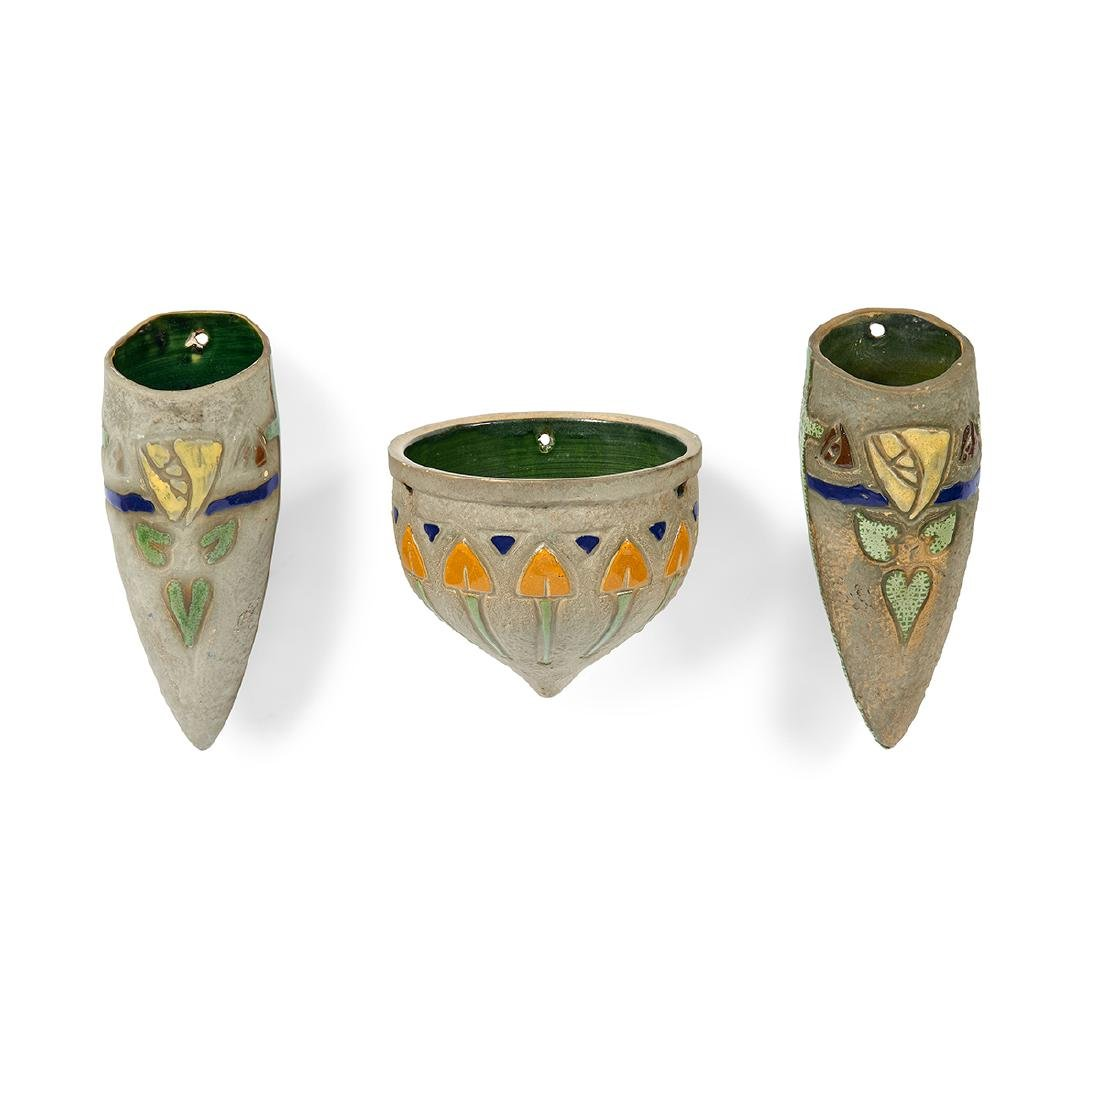 Roseville Pottery Co. Mostique wall pockets, pair